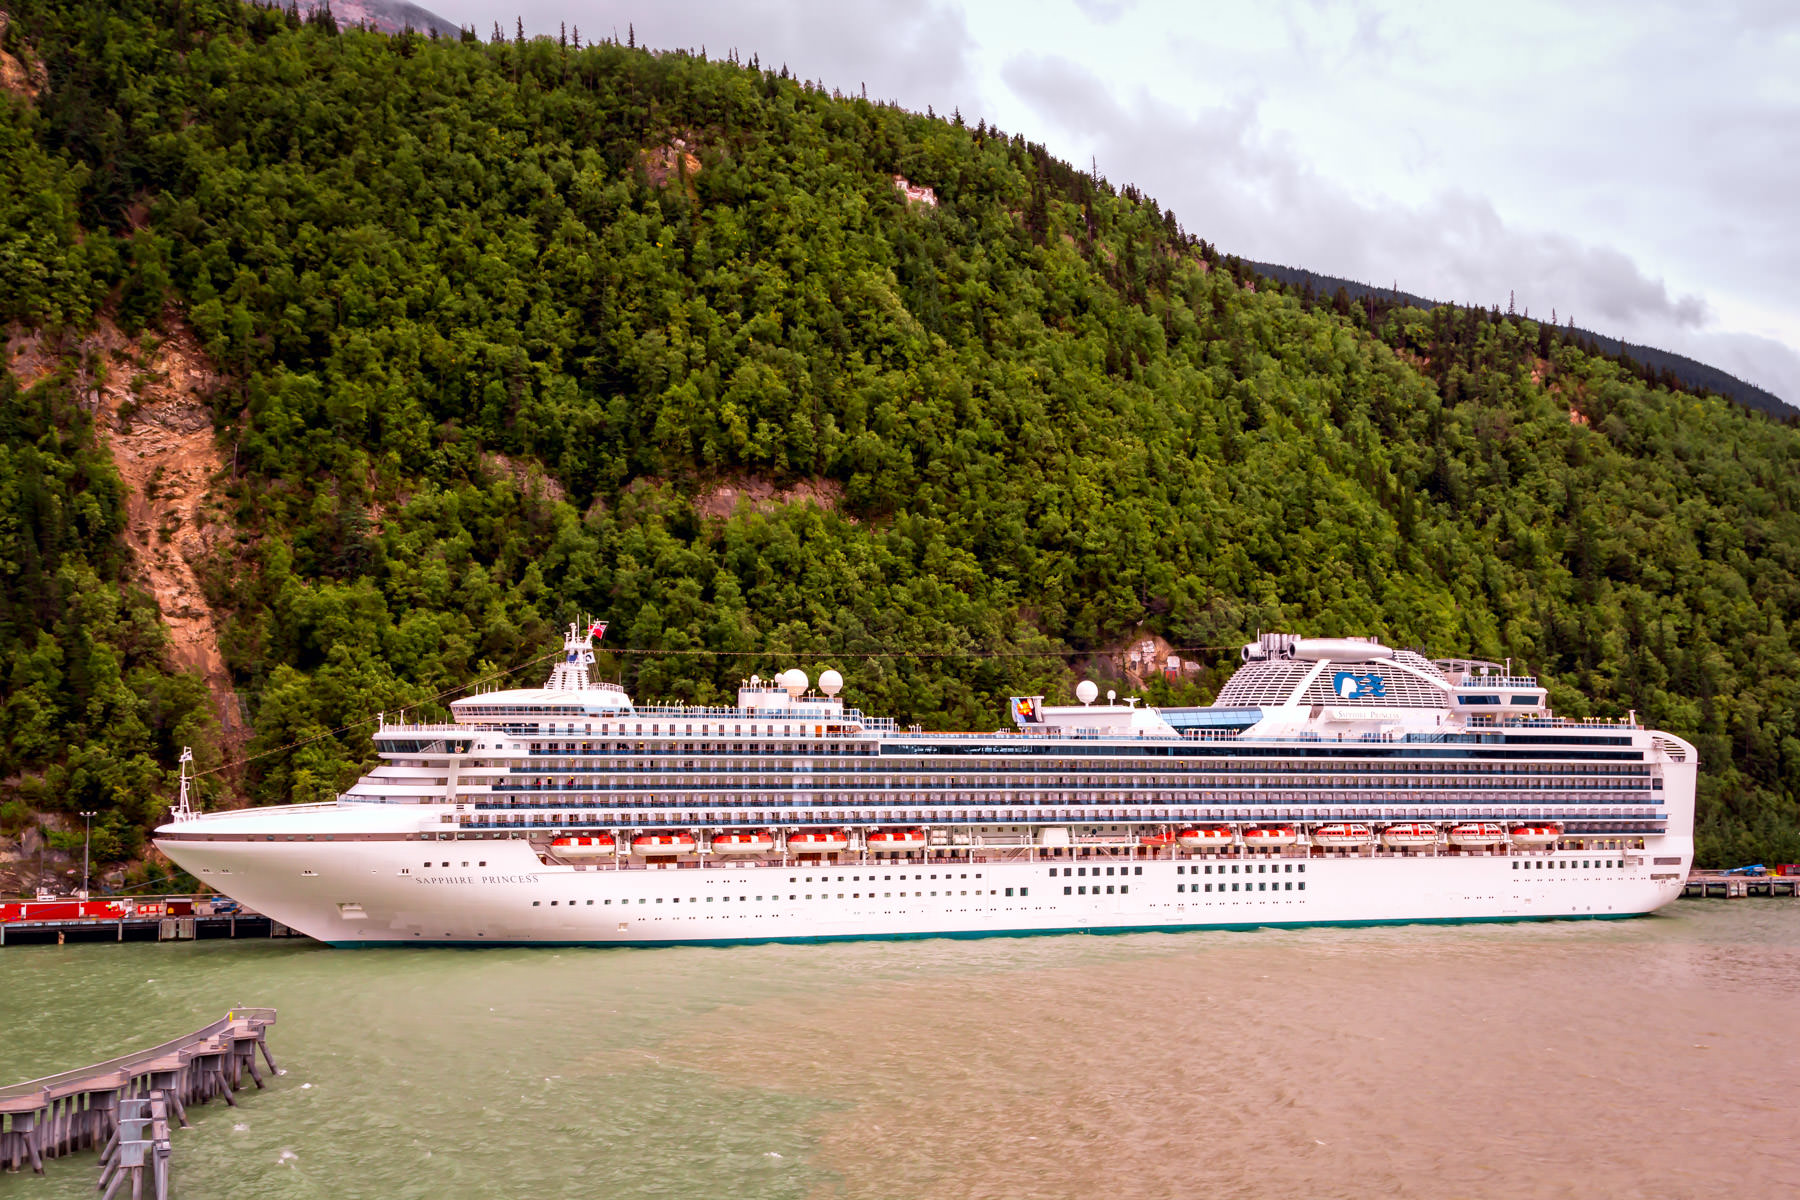 The cruise ship Sapphire Princess, docked in Skagway, Alaska.